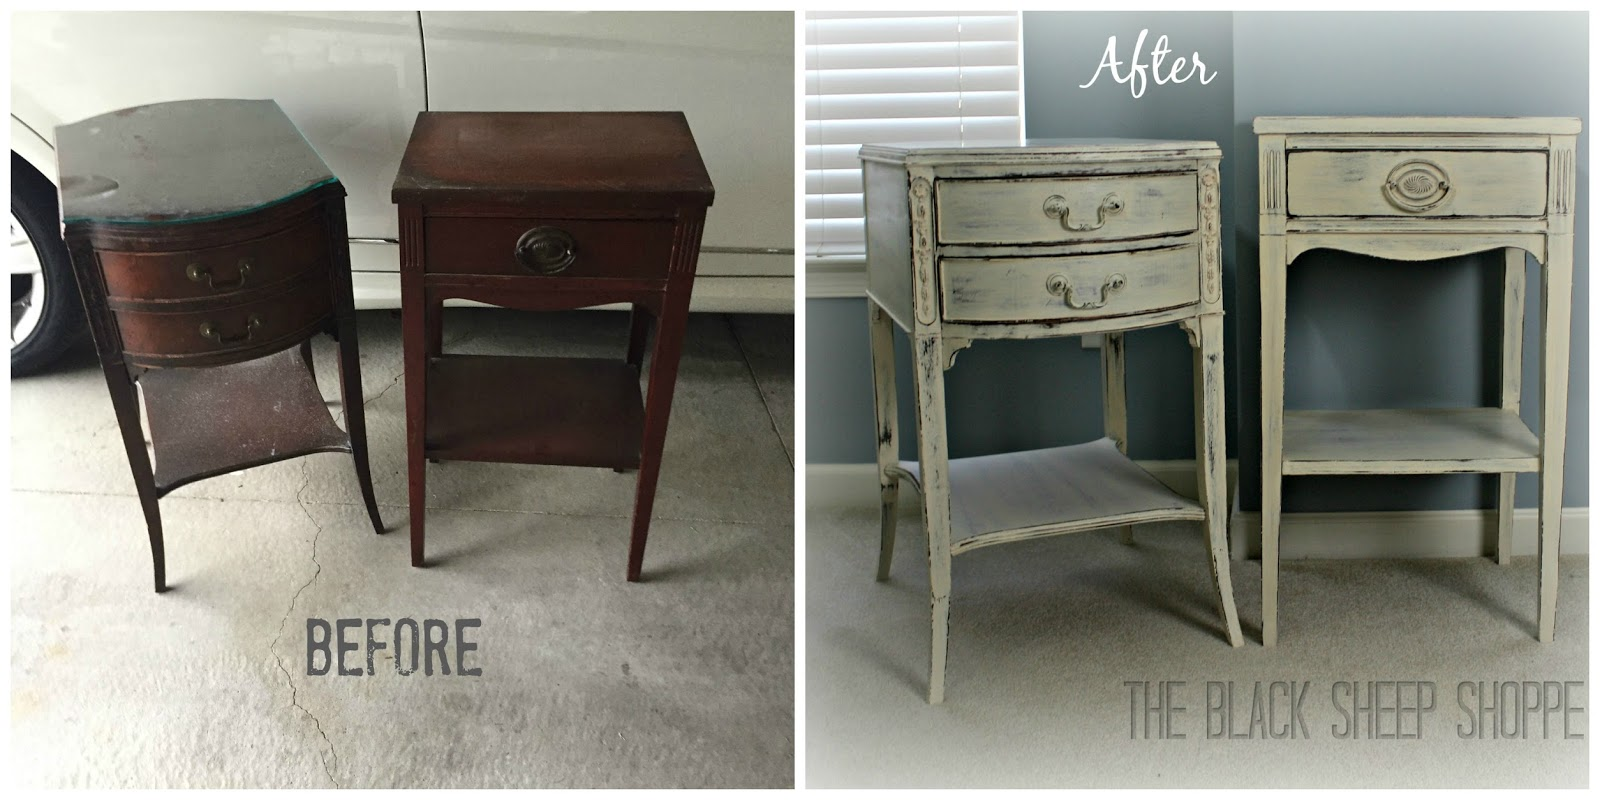 Shabby chic nightstands: before and after